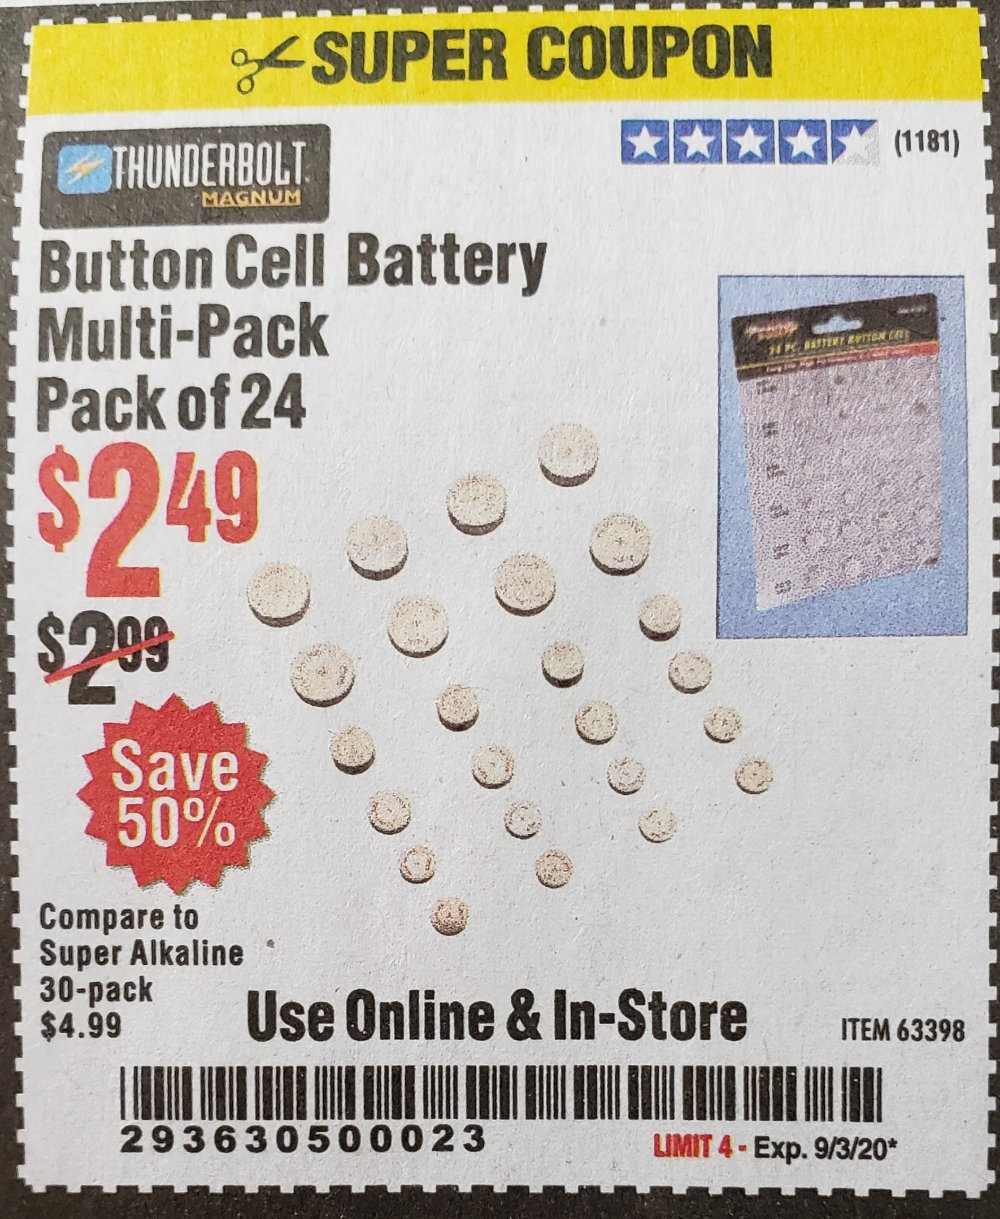 Harbor Freight Coupon, HF Coupons - Button Cell Battery Multi-pack Pack Of 24